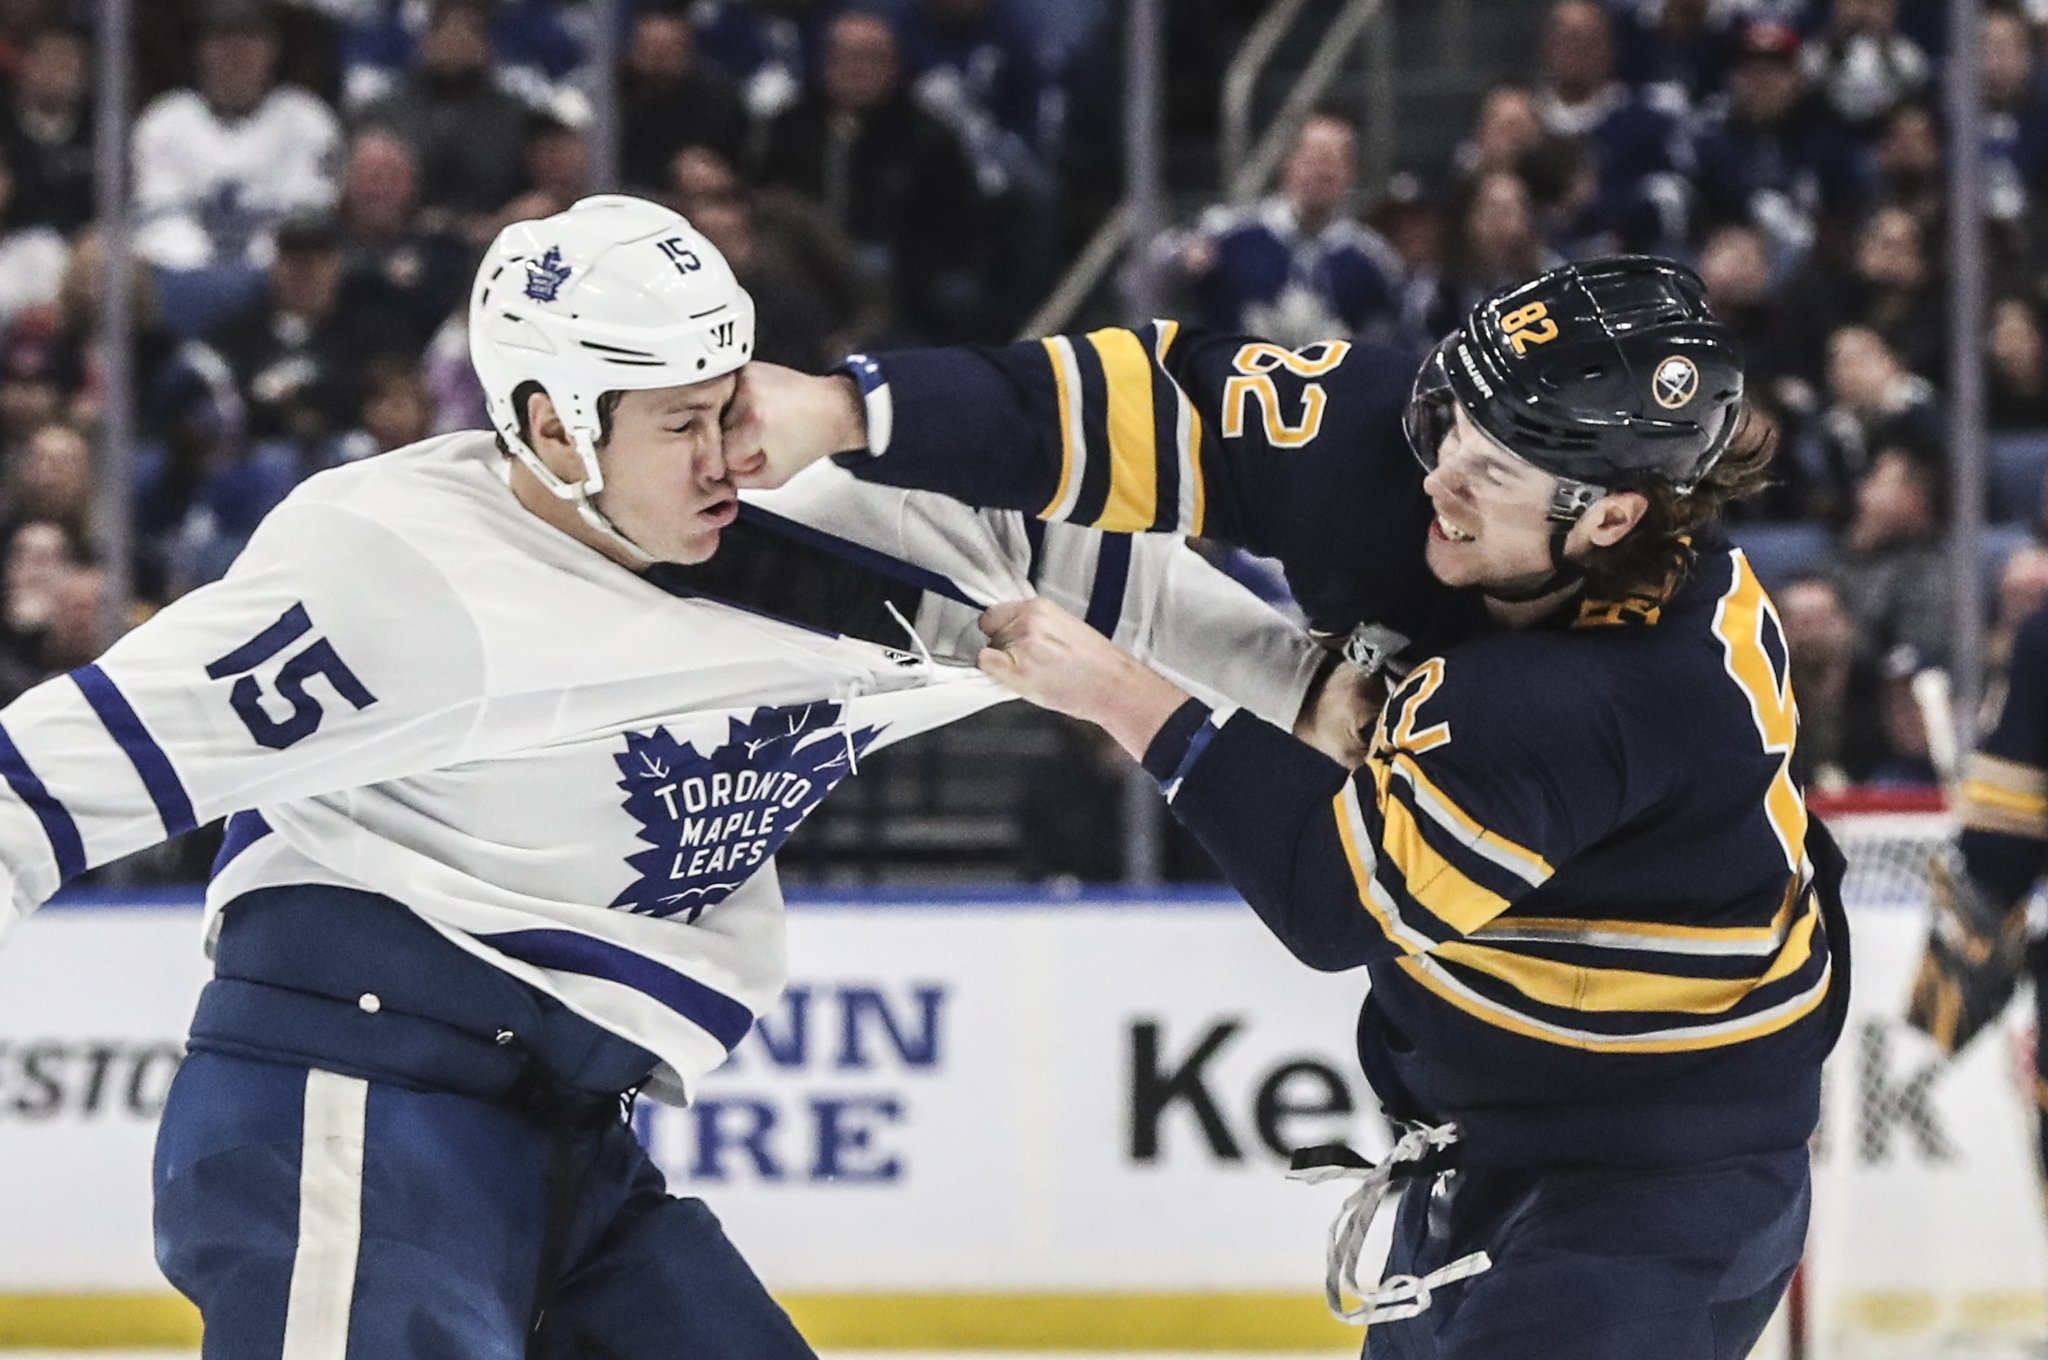 As fighting disappears in the NHL, bouts like Beaulieu-Martin stand out